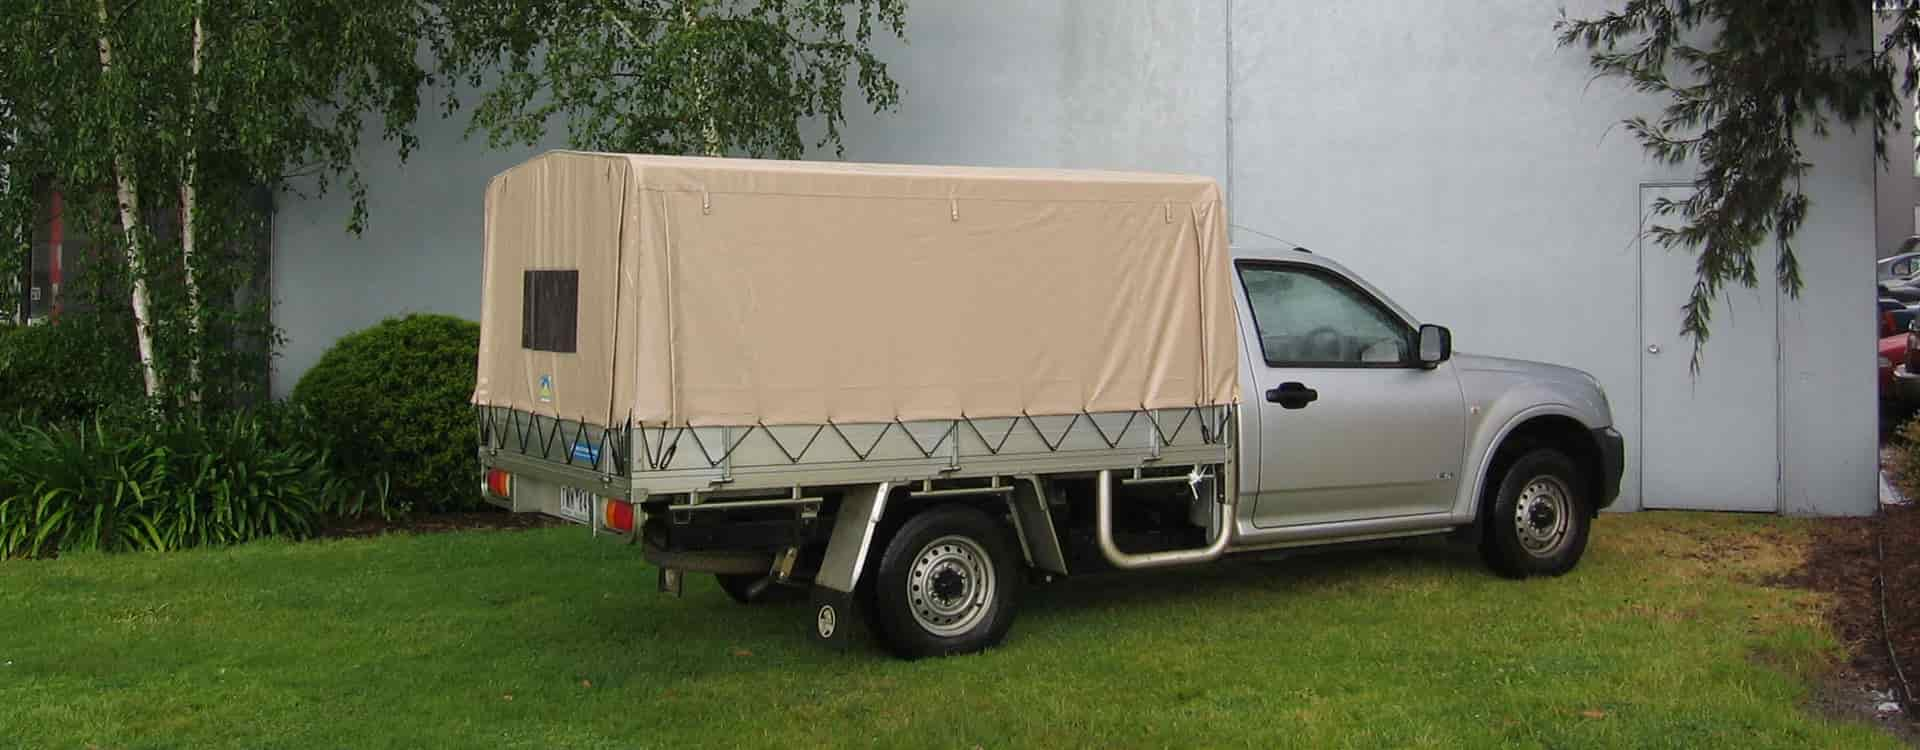 camper trailer travel covers